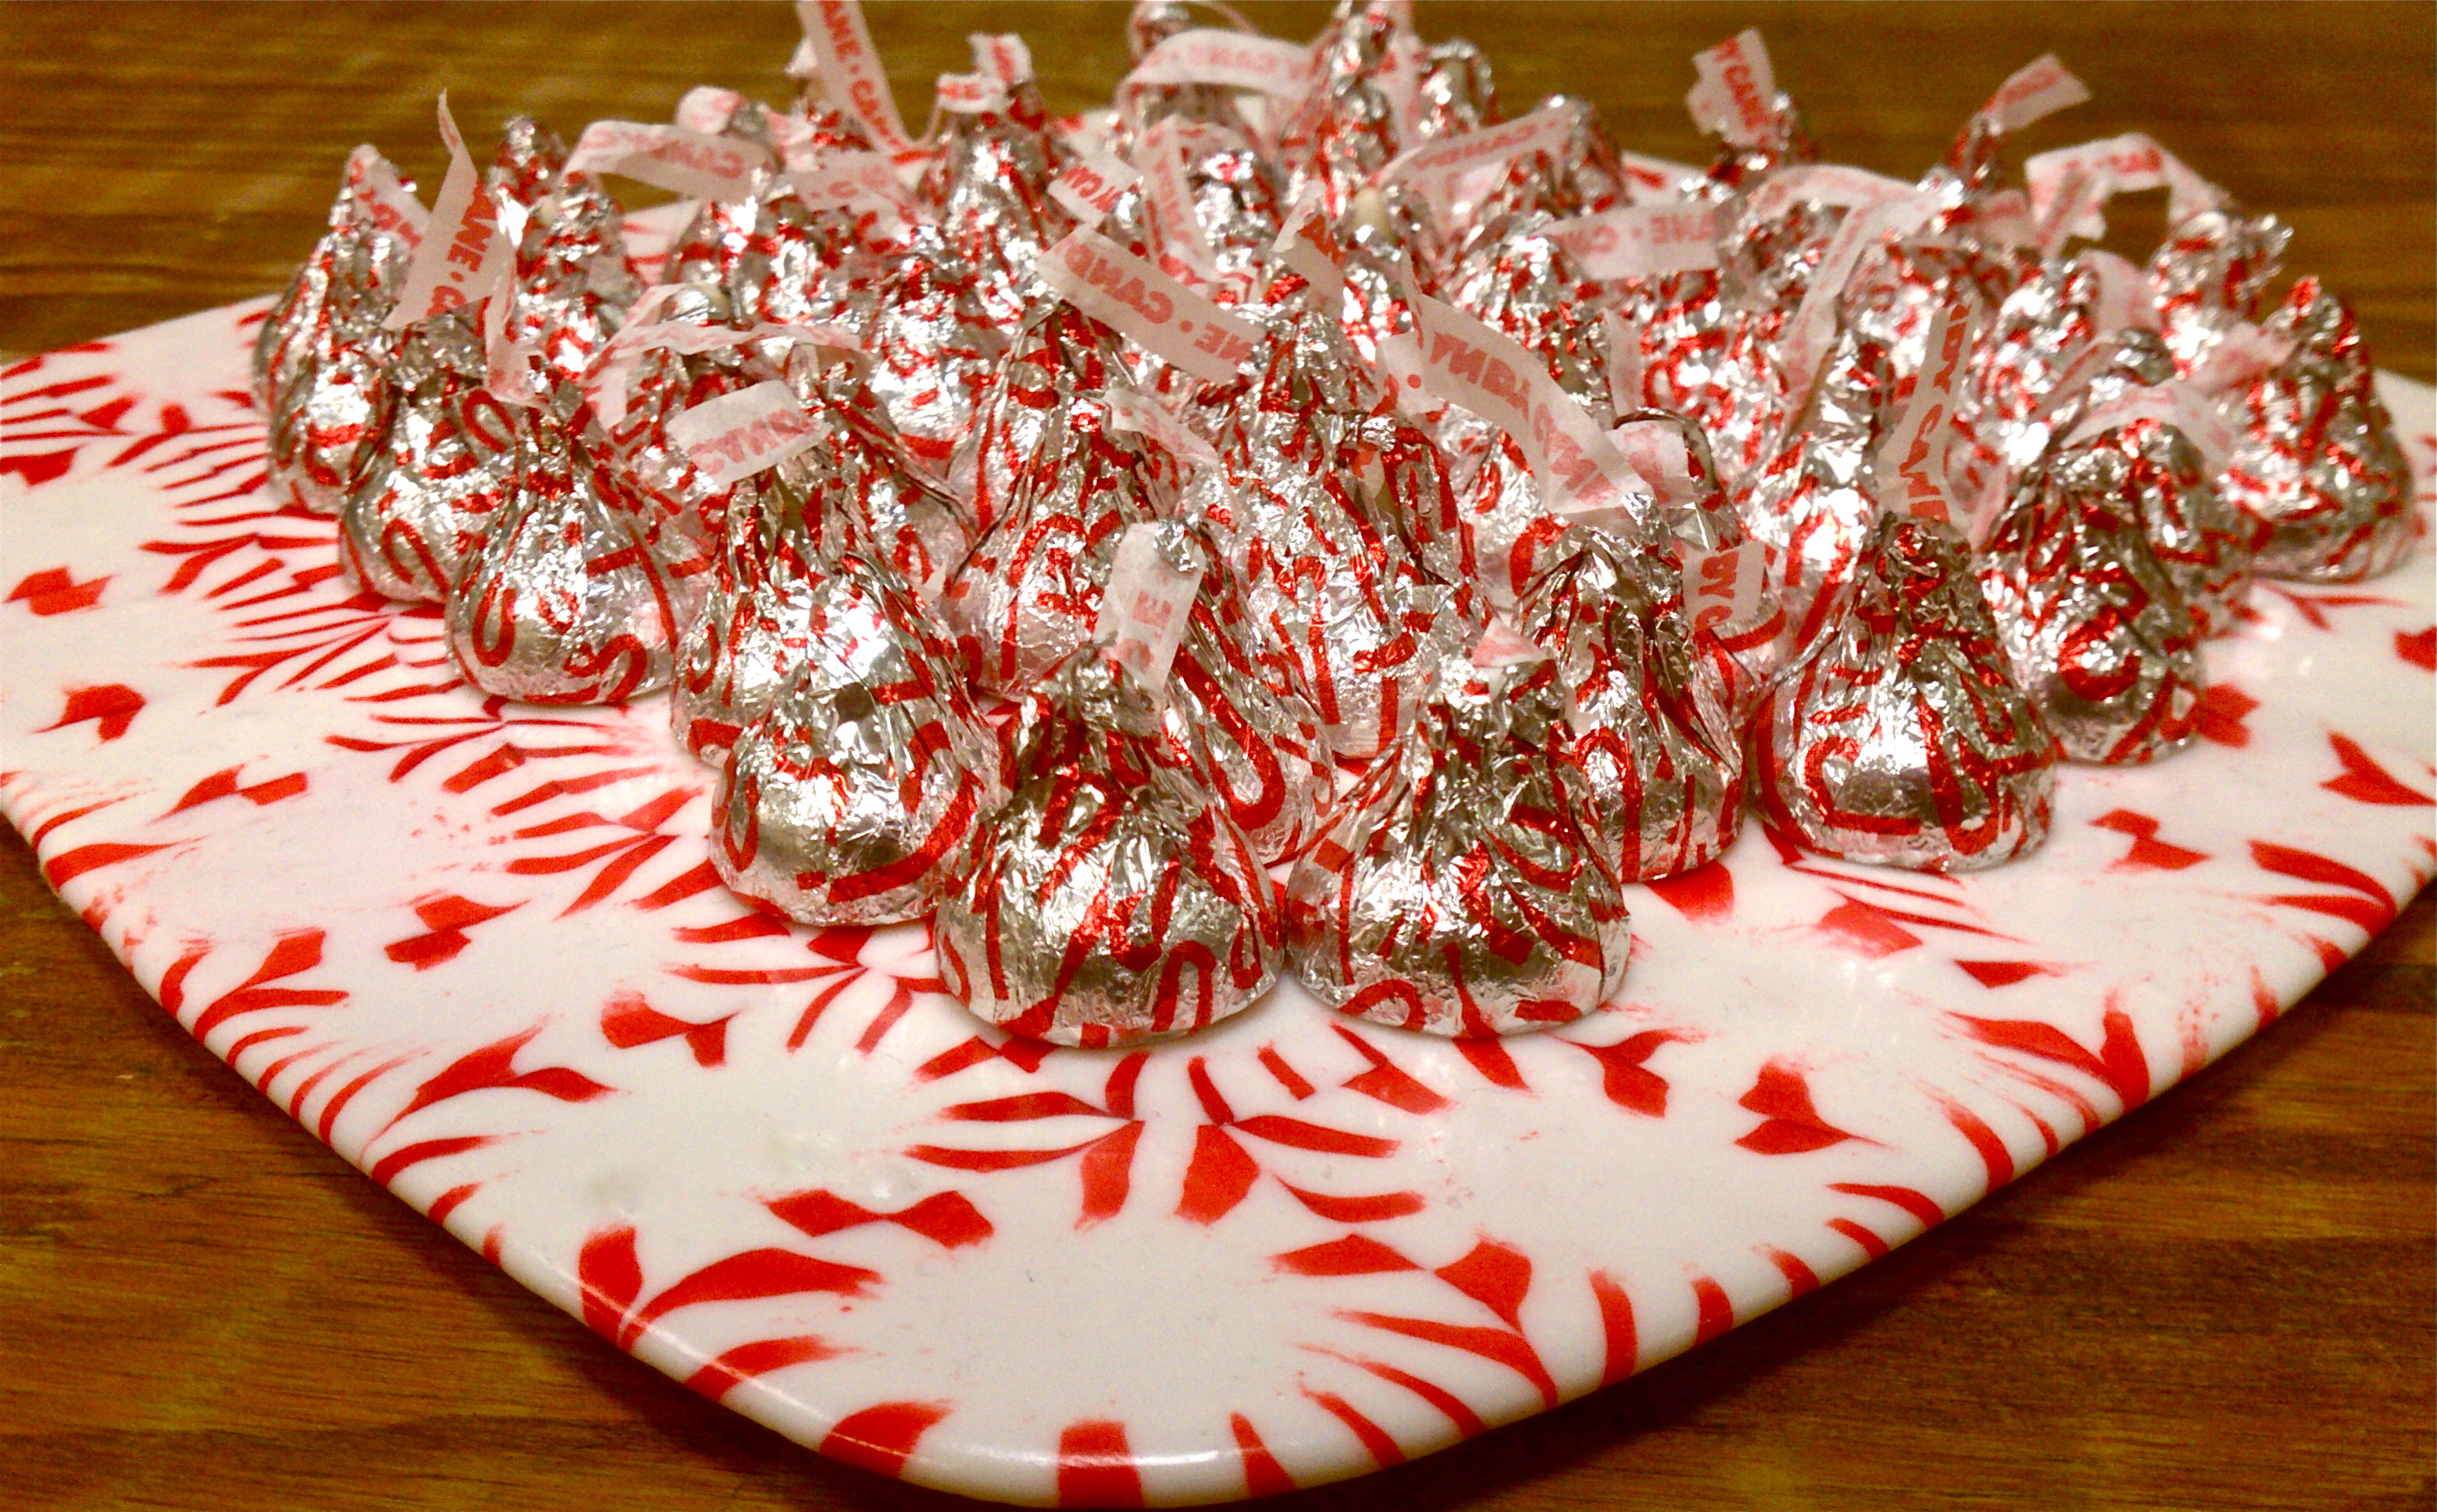 Peppermint serving trays